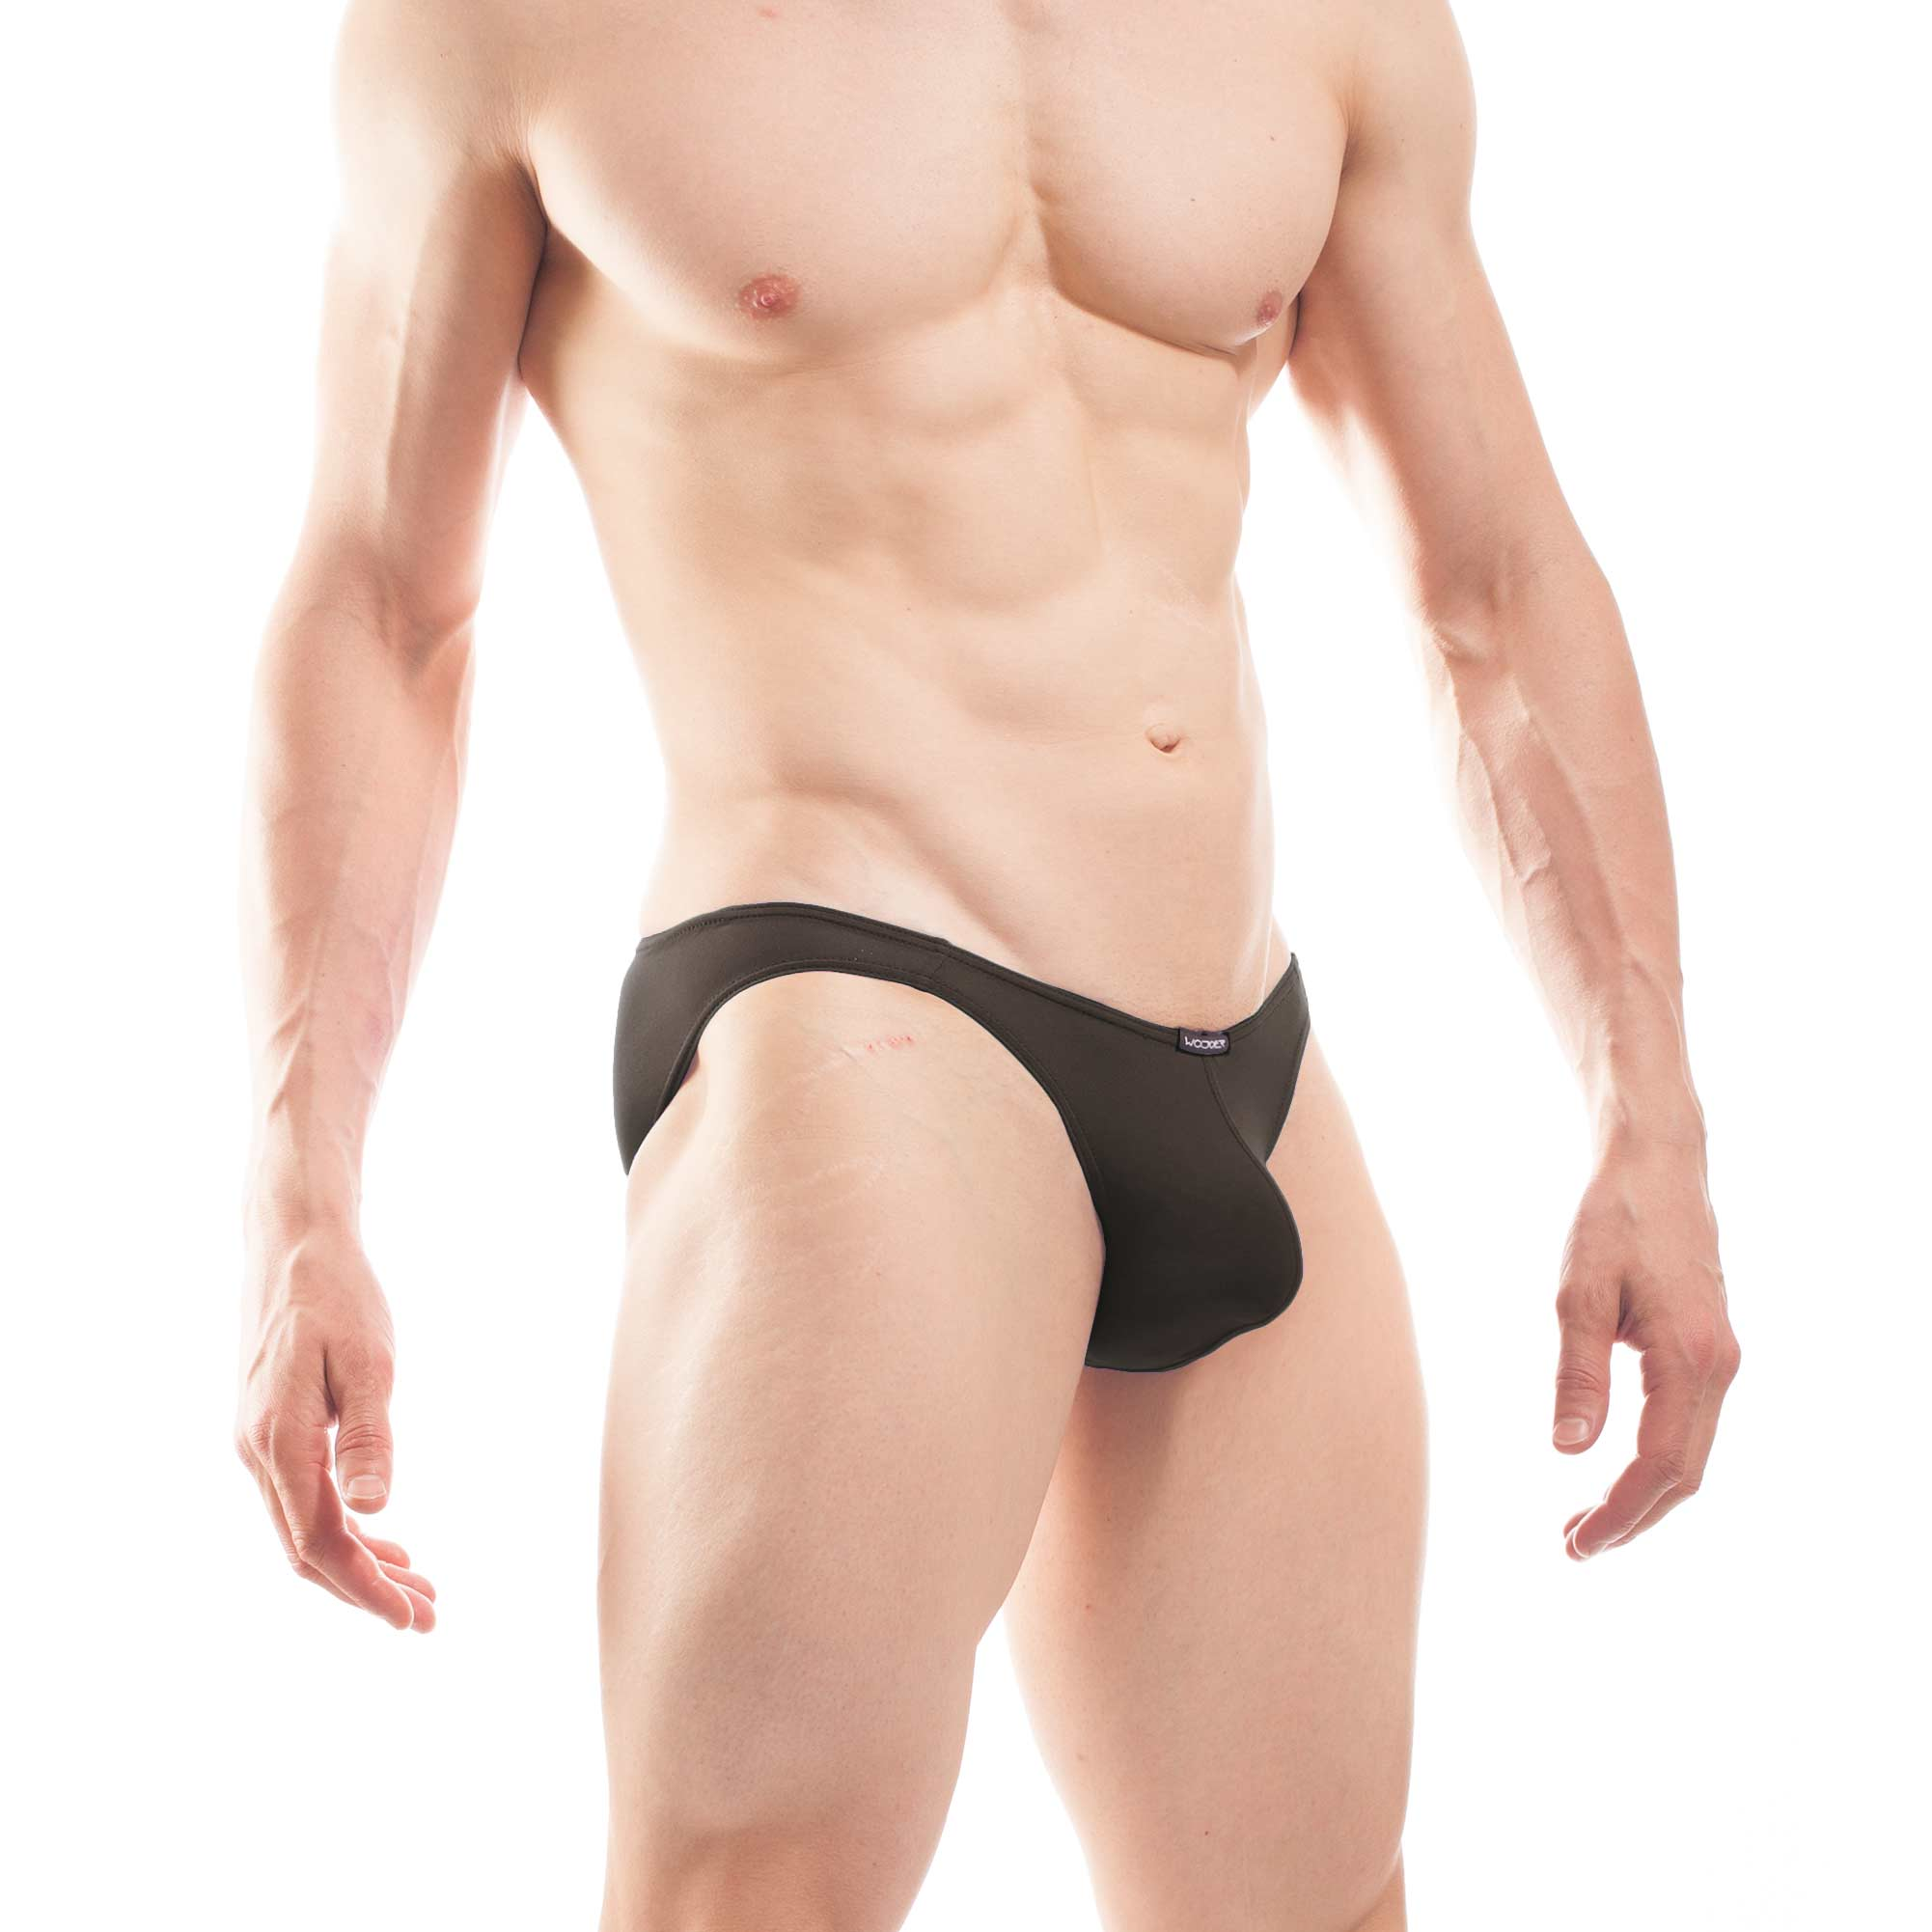 Basic Slip, BEUN Basic, Beach and underwear, badetauglich, Cheeky Slip, Brief, Pants, Shorts, Unterhose, schwarz